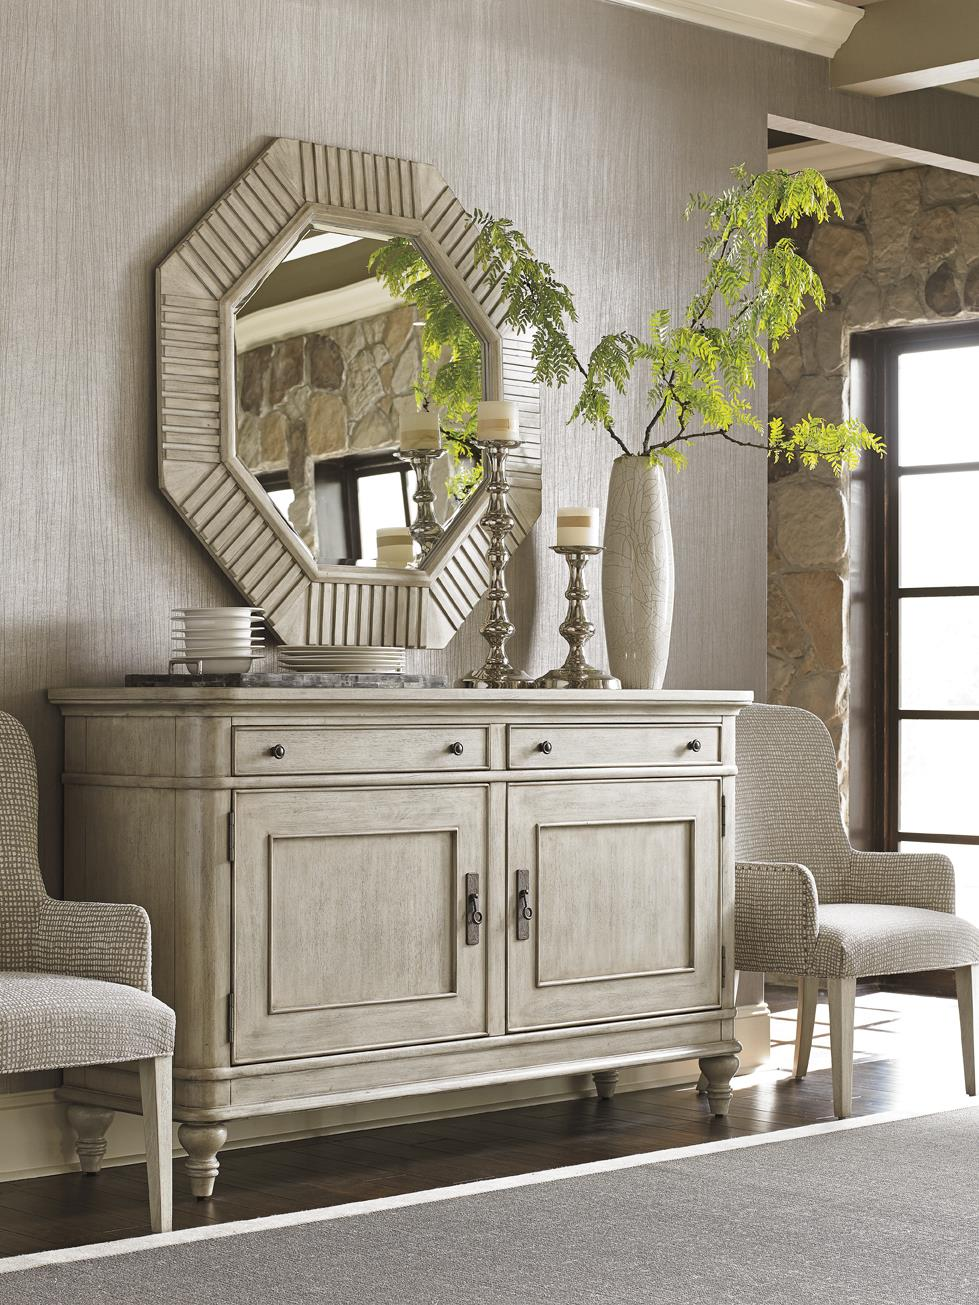 Lexington oyster bay oakdale buffet with dining and - Lexington oyster bay bedroom furniture ...